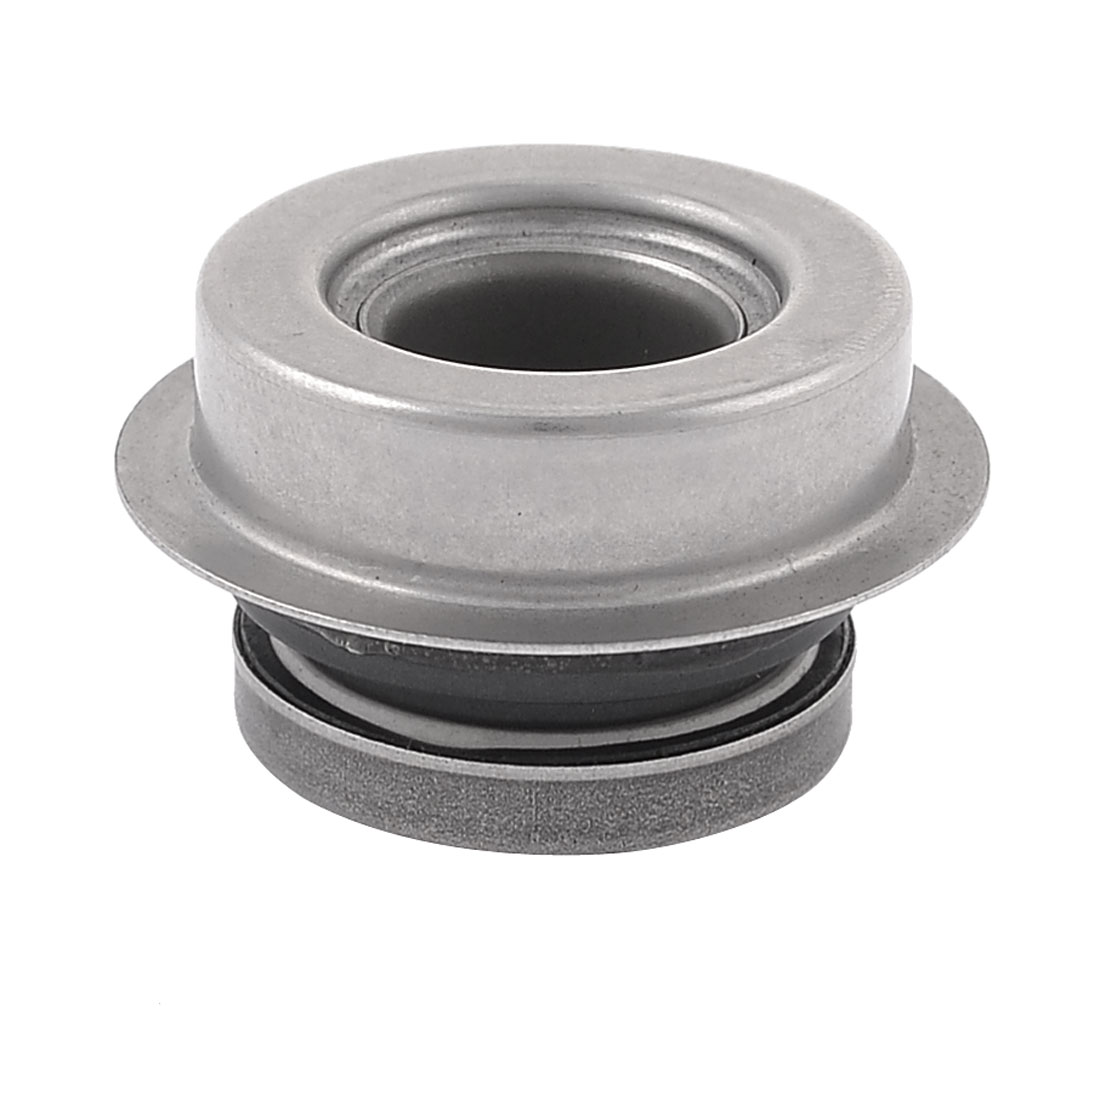 "13mm 0.5"" Internal Dia Rubber Bellow Mechanical Shaft Seal"